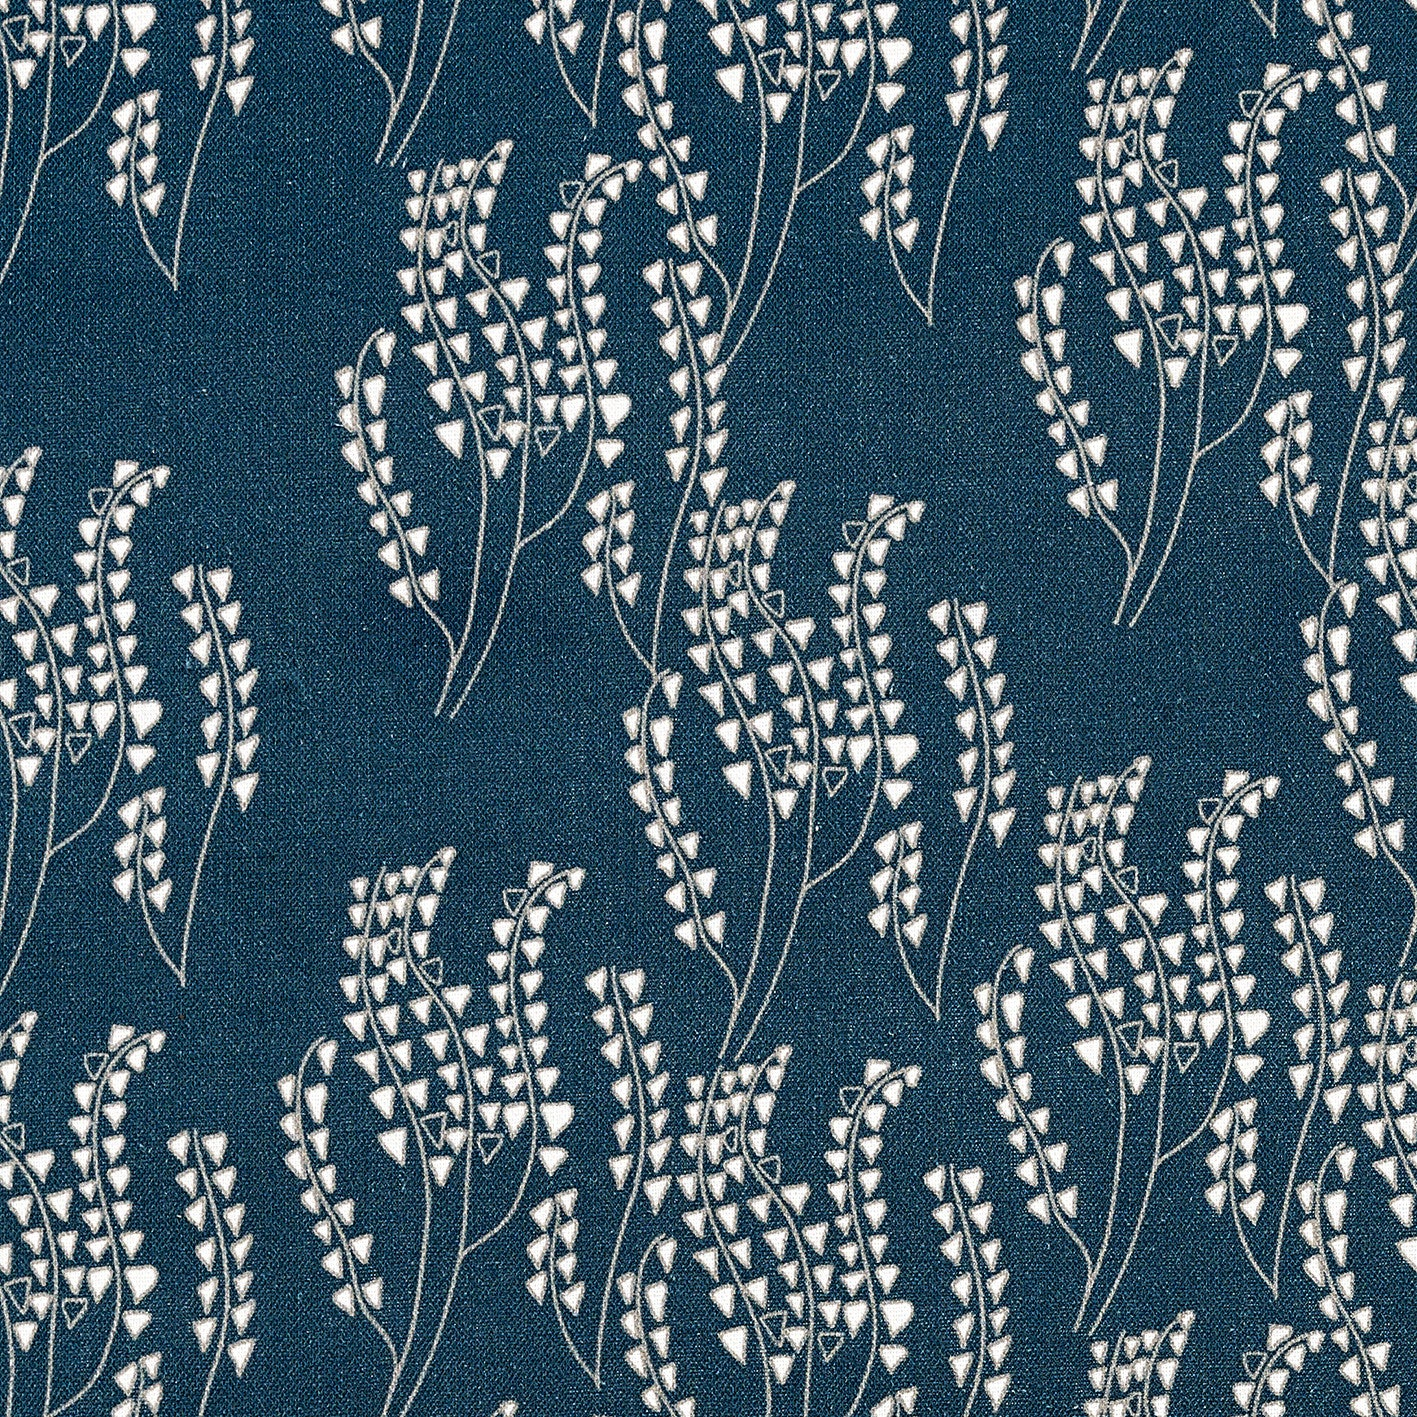 Maricopa Graphic Floral Pattern Cotton Linen & Canvas Fabric by the Yard in Dark Petrol Blue & Gray